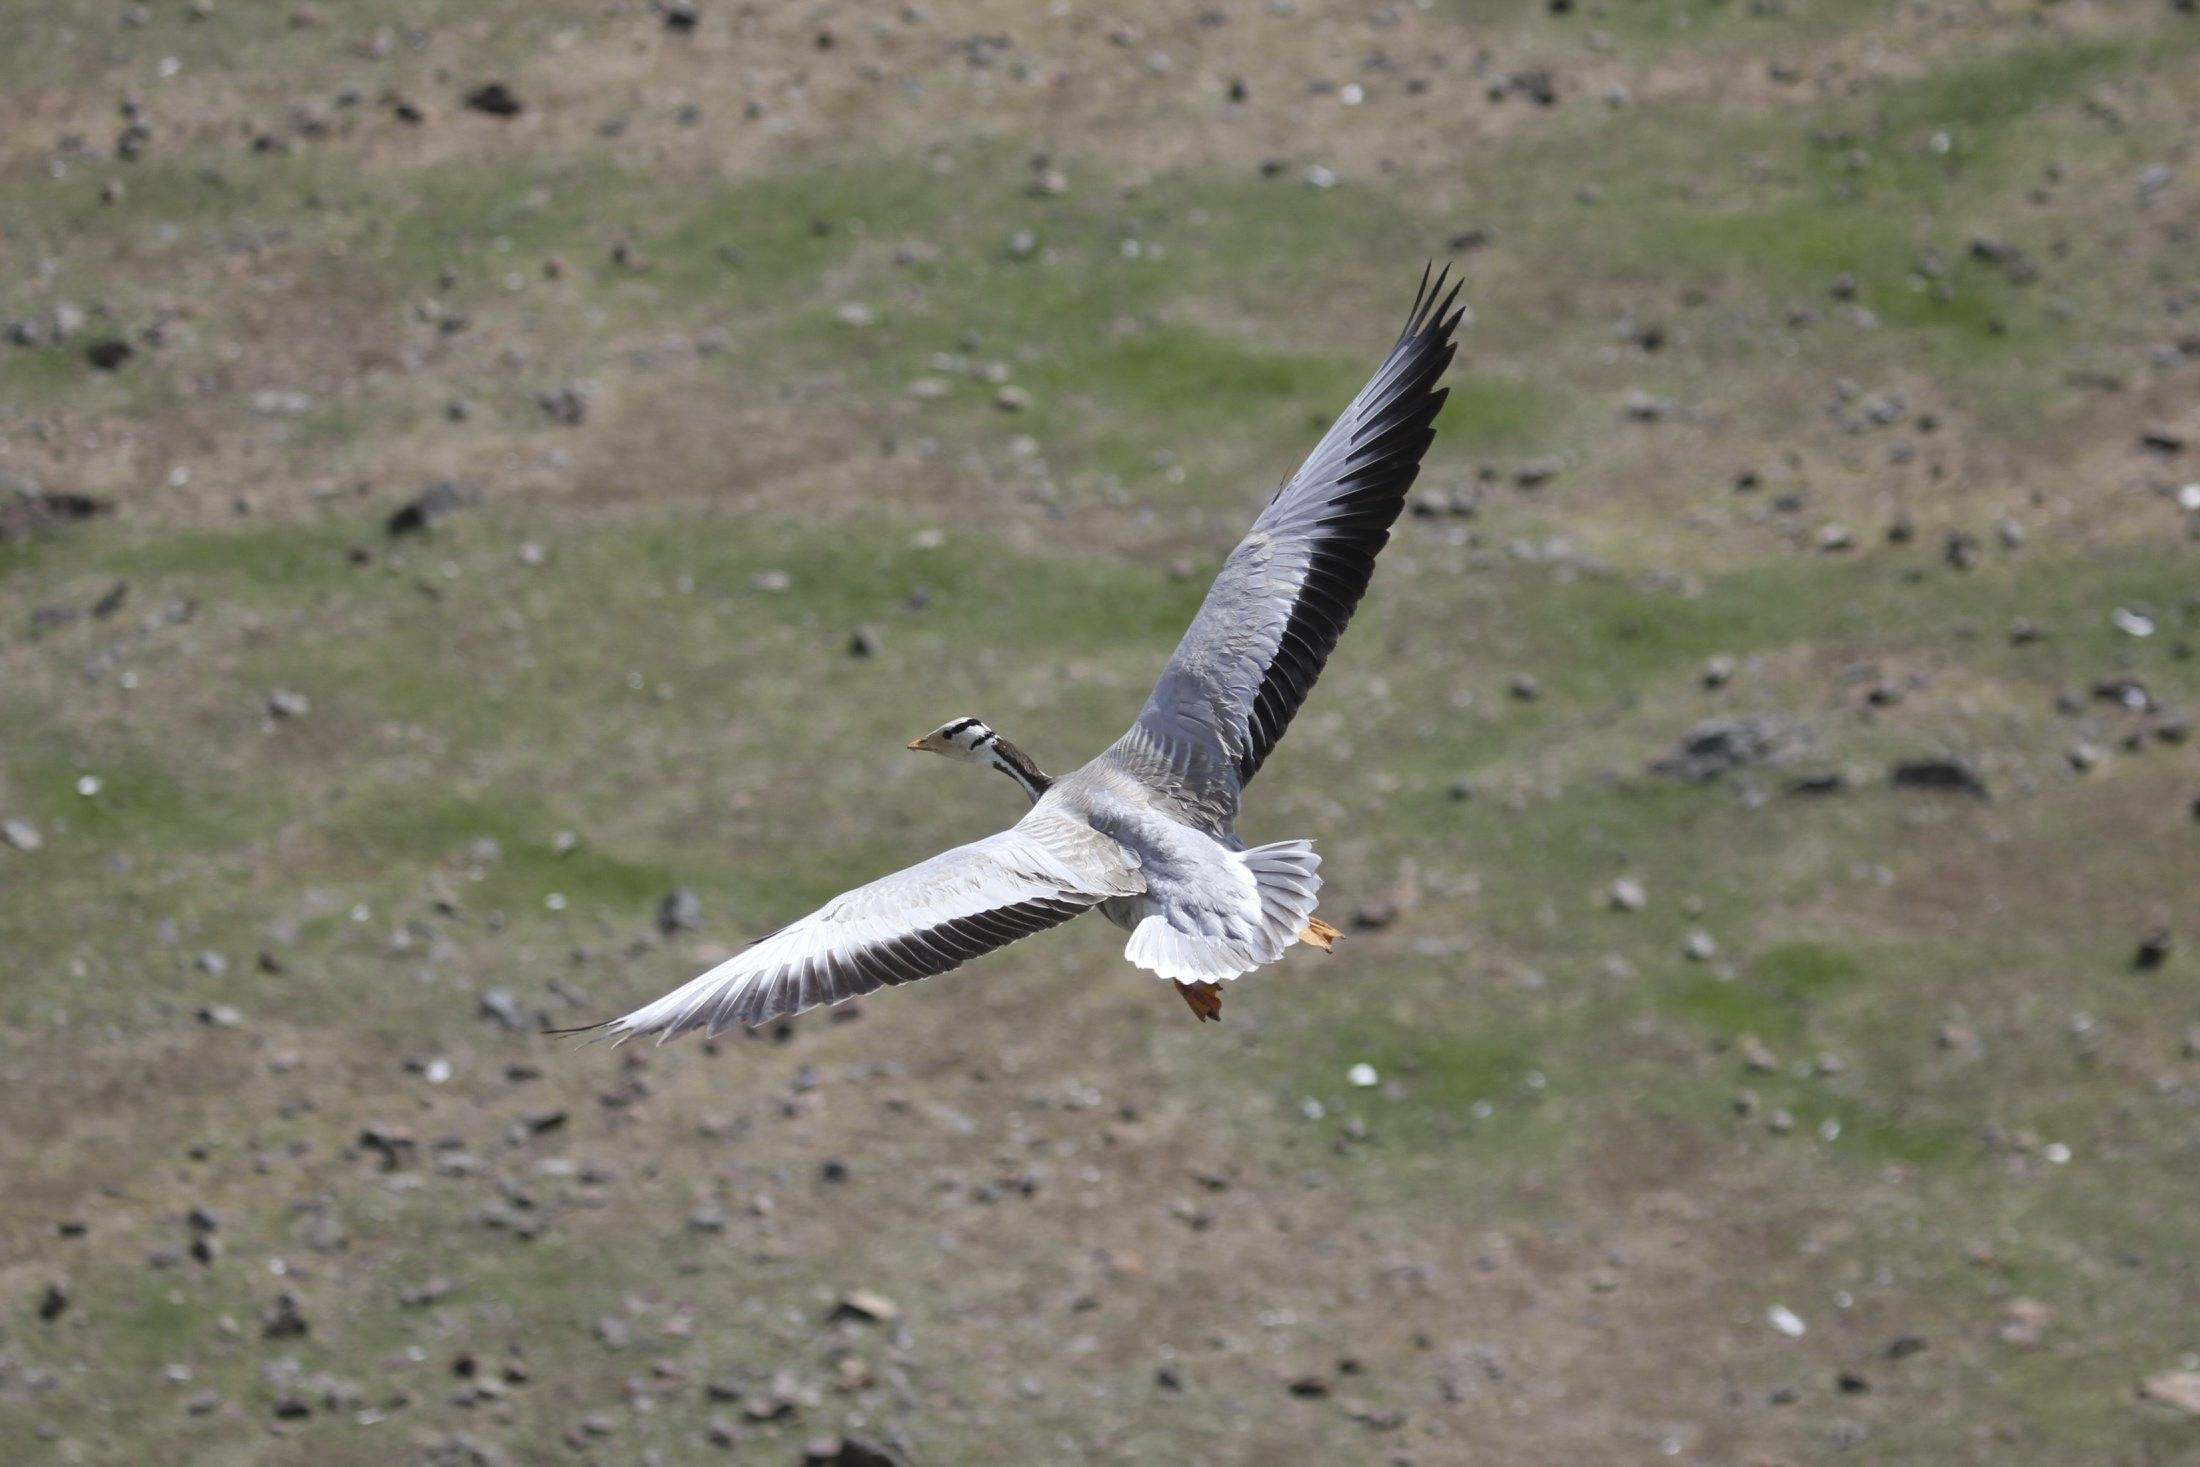 A bar-headed goose flies close to the terrain on its round-trip migration, enabling it to avoid thin air and conserve energy.